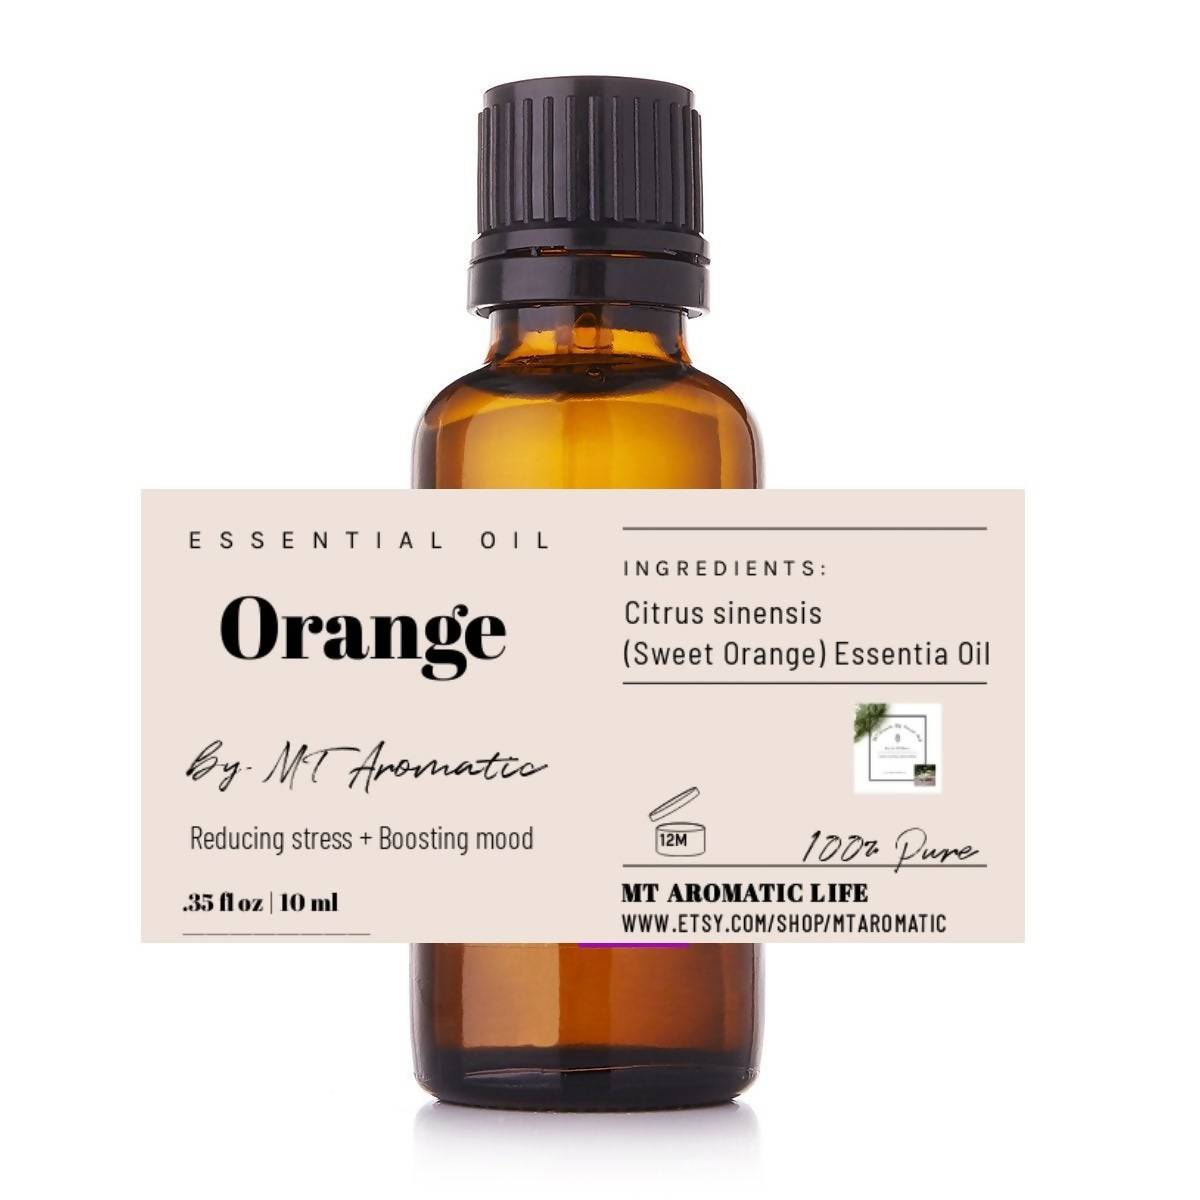 Sweet Orange Organic Essential Oil -100% Pure Orange Oil -Therapeutic grade, Mood booster, Relaxation -Aromatherapy, Natural Skincare